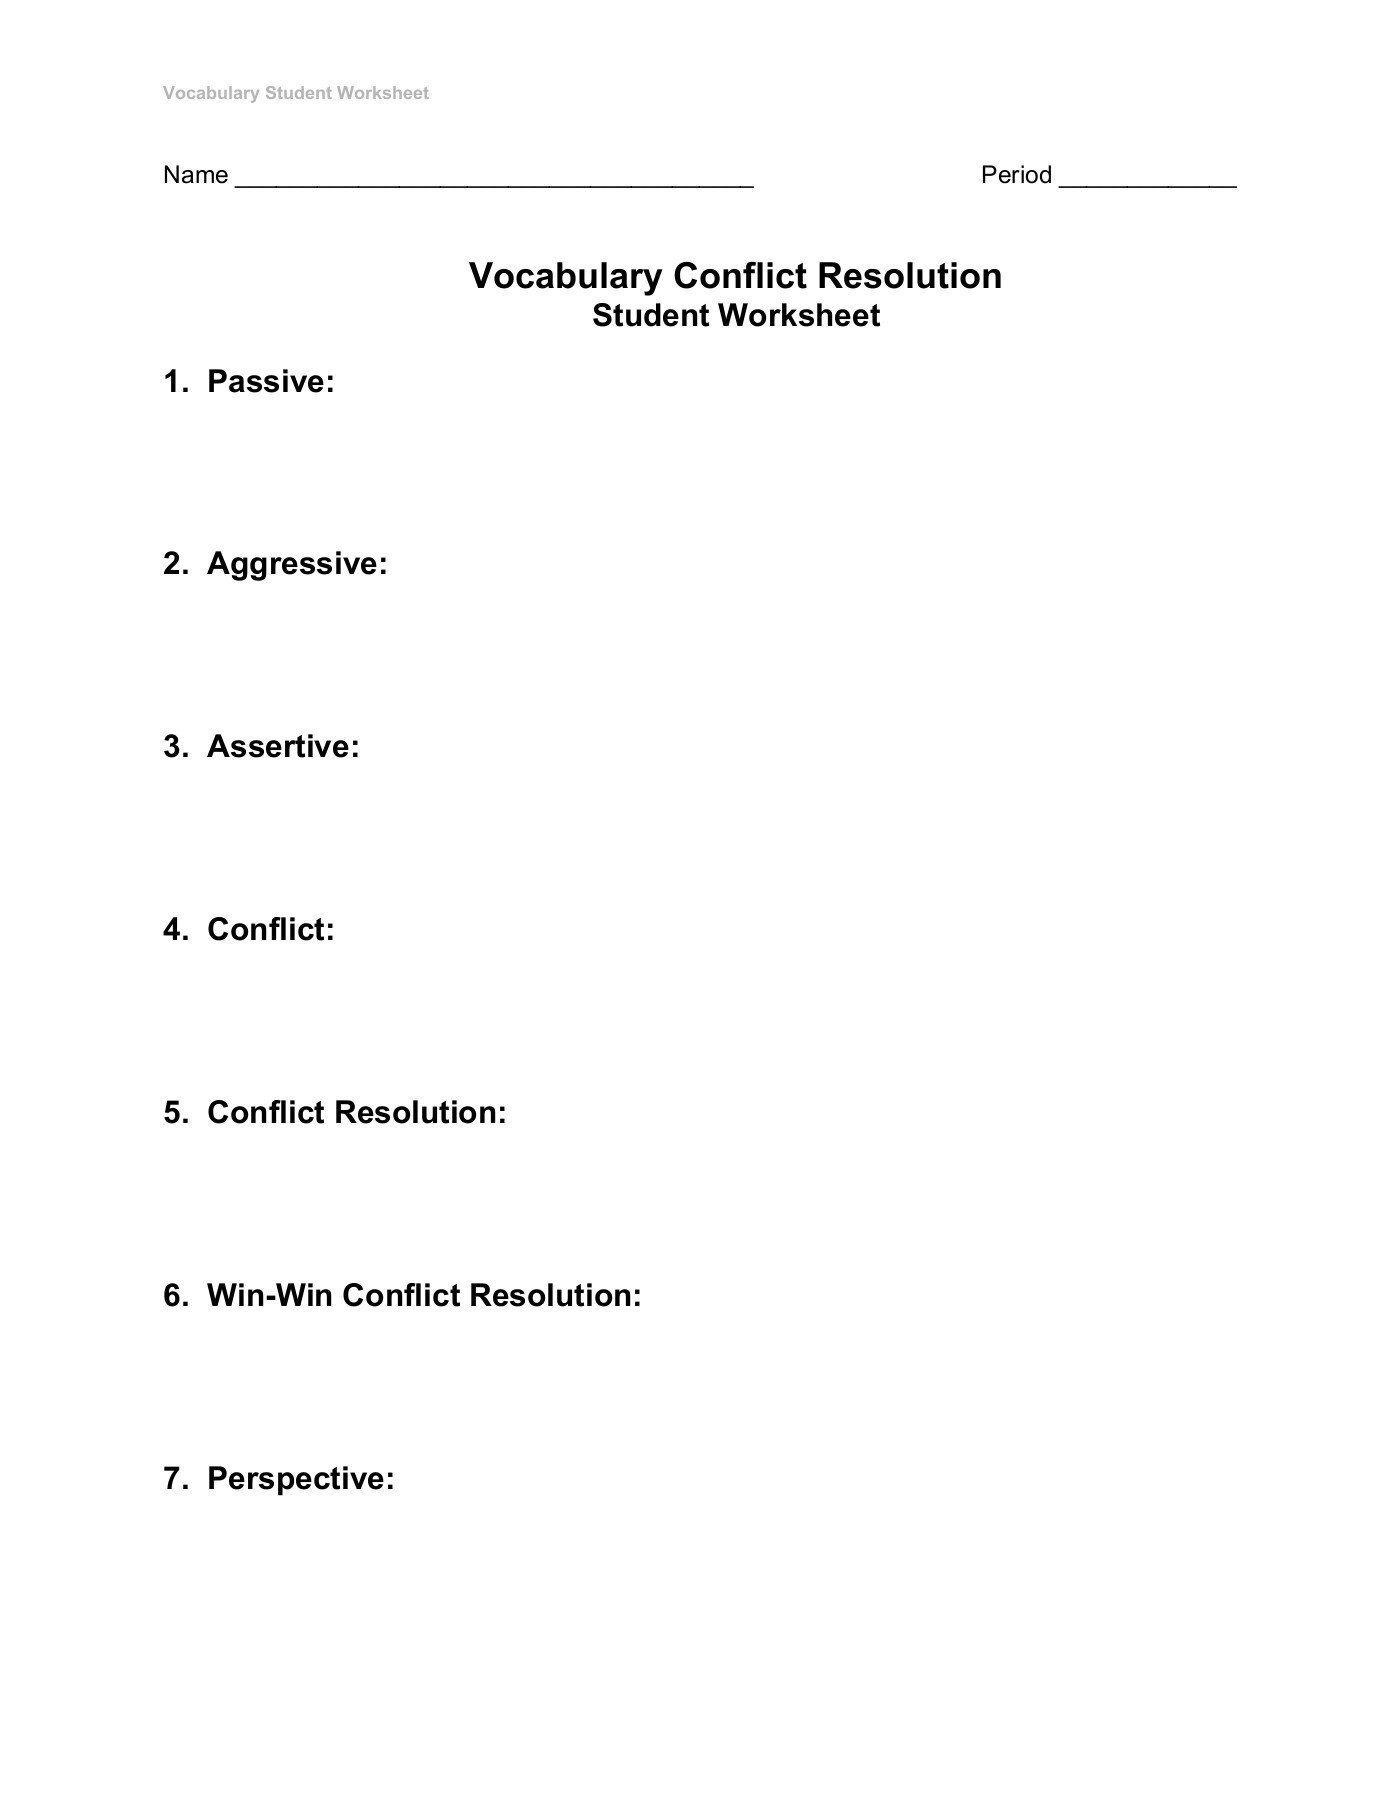 Conflict Resolution Worksheets for Students Vocabulary Conflict Resolution Student Worksheet 1